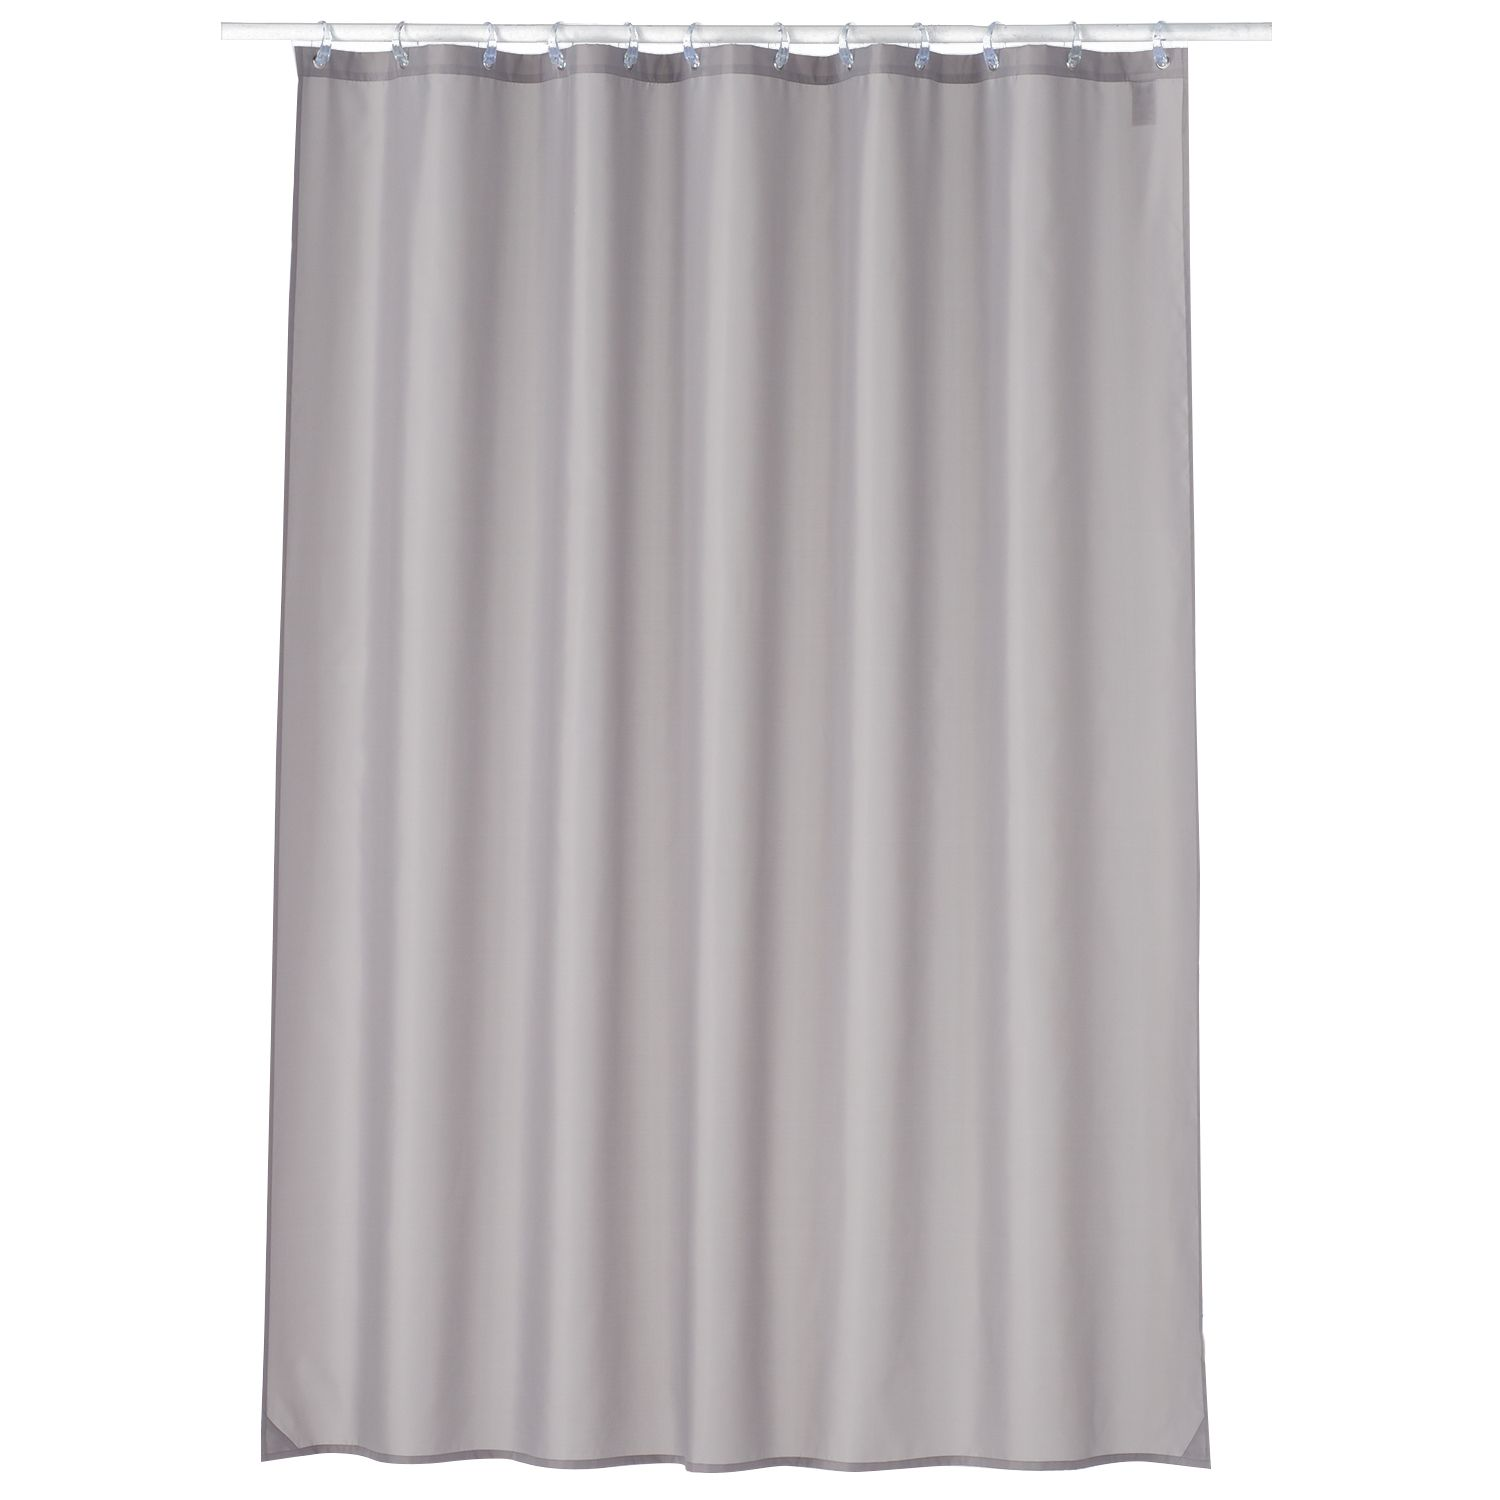 Fabric Shower Curtain Liner. Long Shower Curtain Liner Shower ...